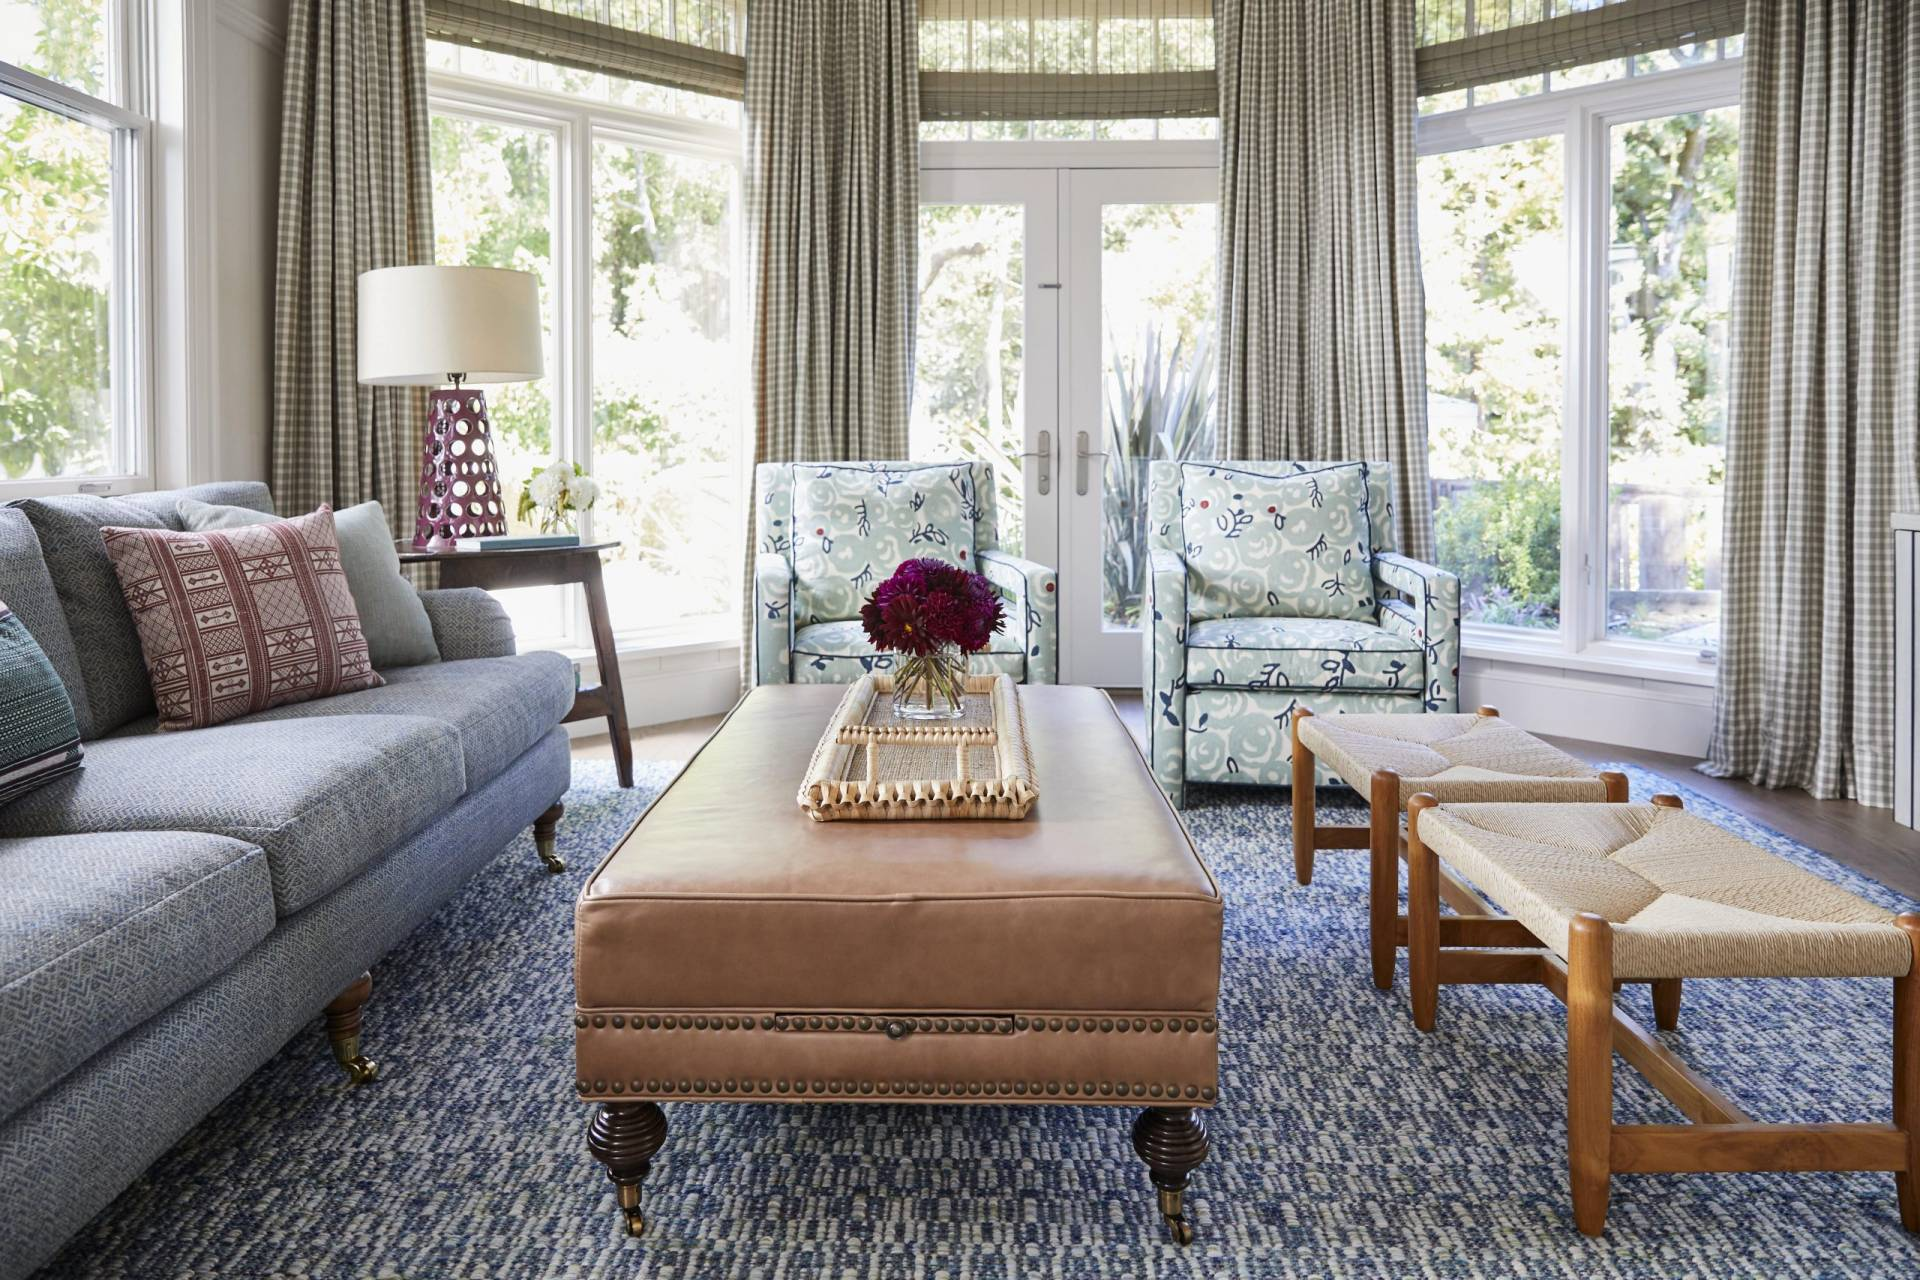 Living room with herringbone sofa, paisley sitting chairs, checkered drapes, and woven wood shades